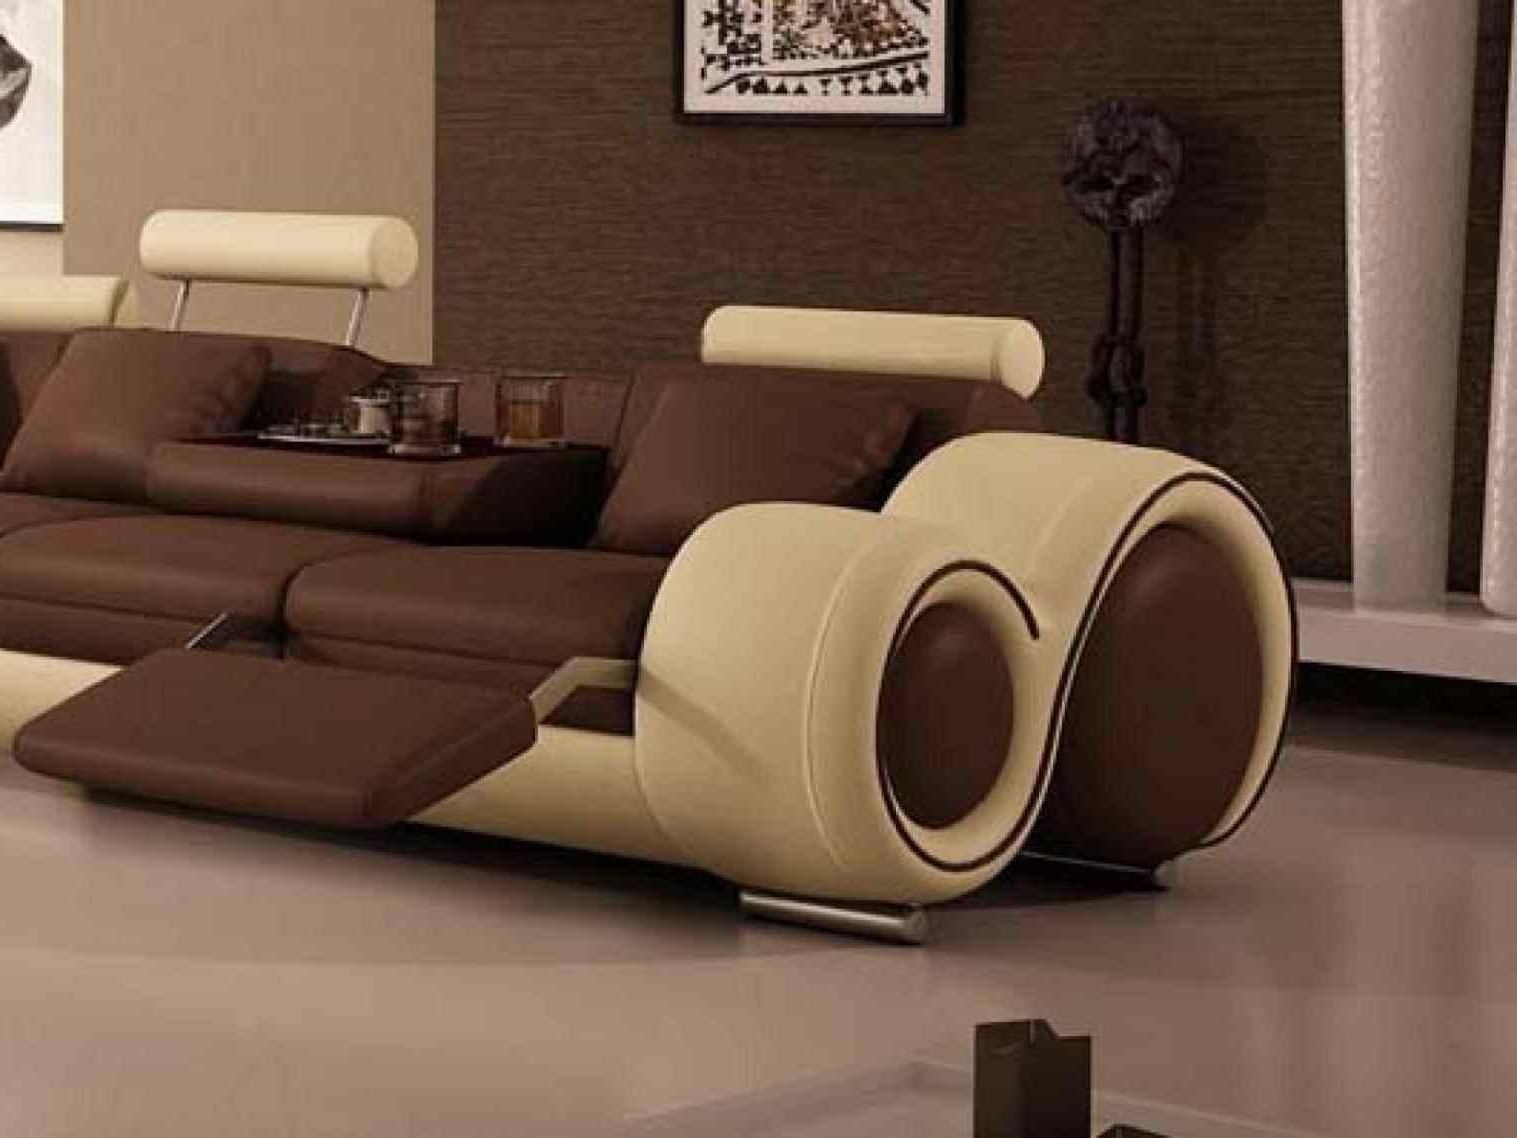 Unusual Sofa Throughout Most Current Sofa : Furniture Modern Unusual Sofa Design Awesome Style Riveting (Gallery 15 of 20)